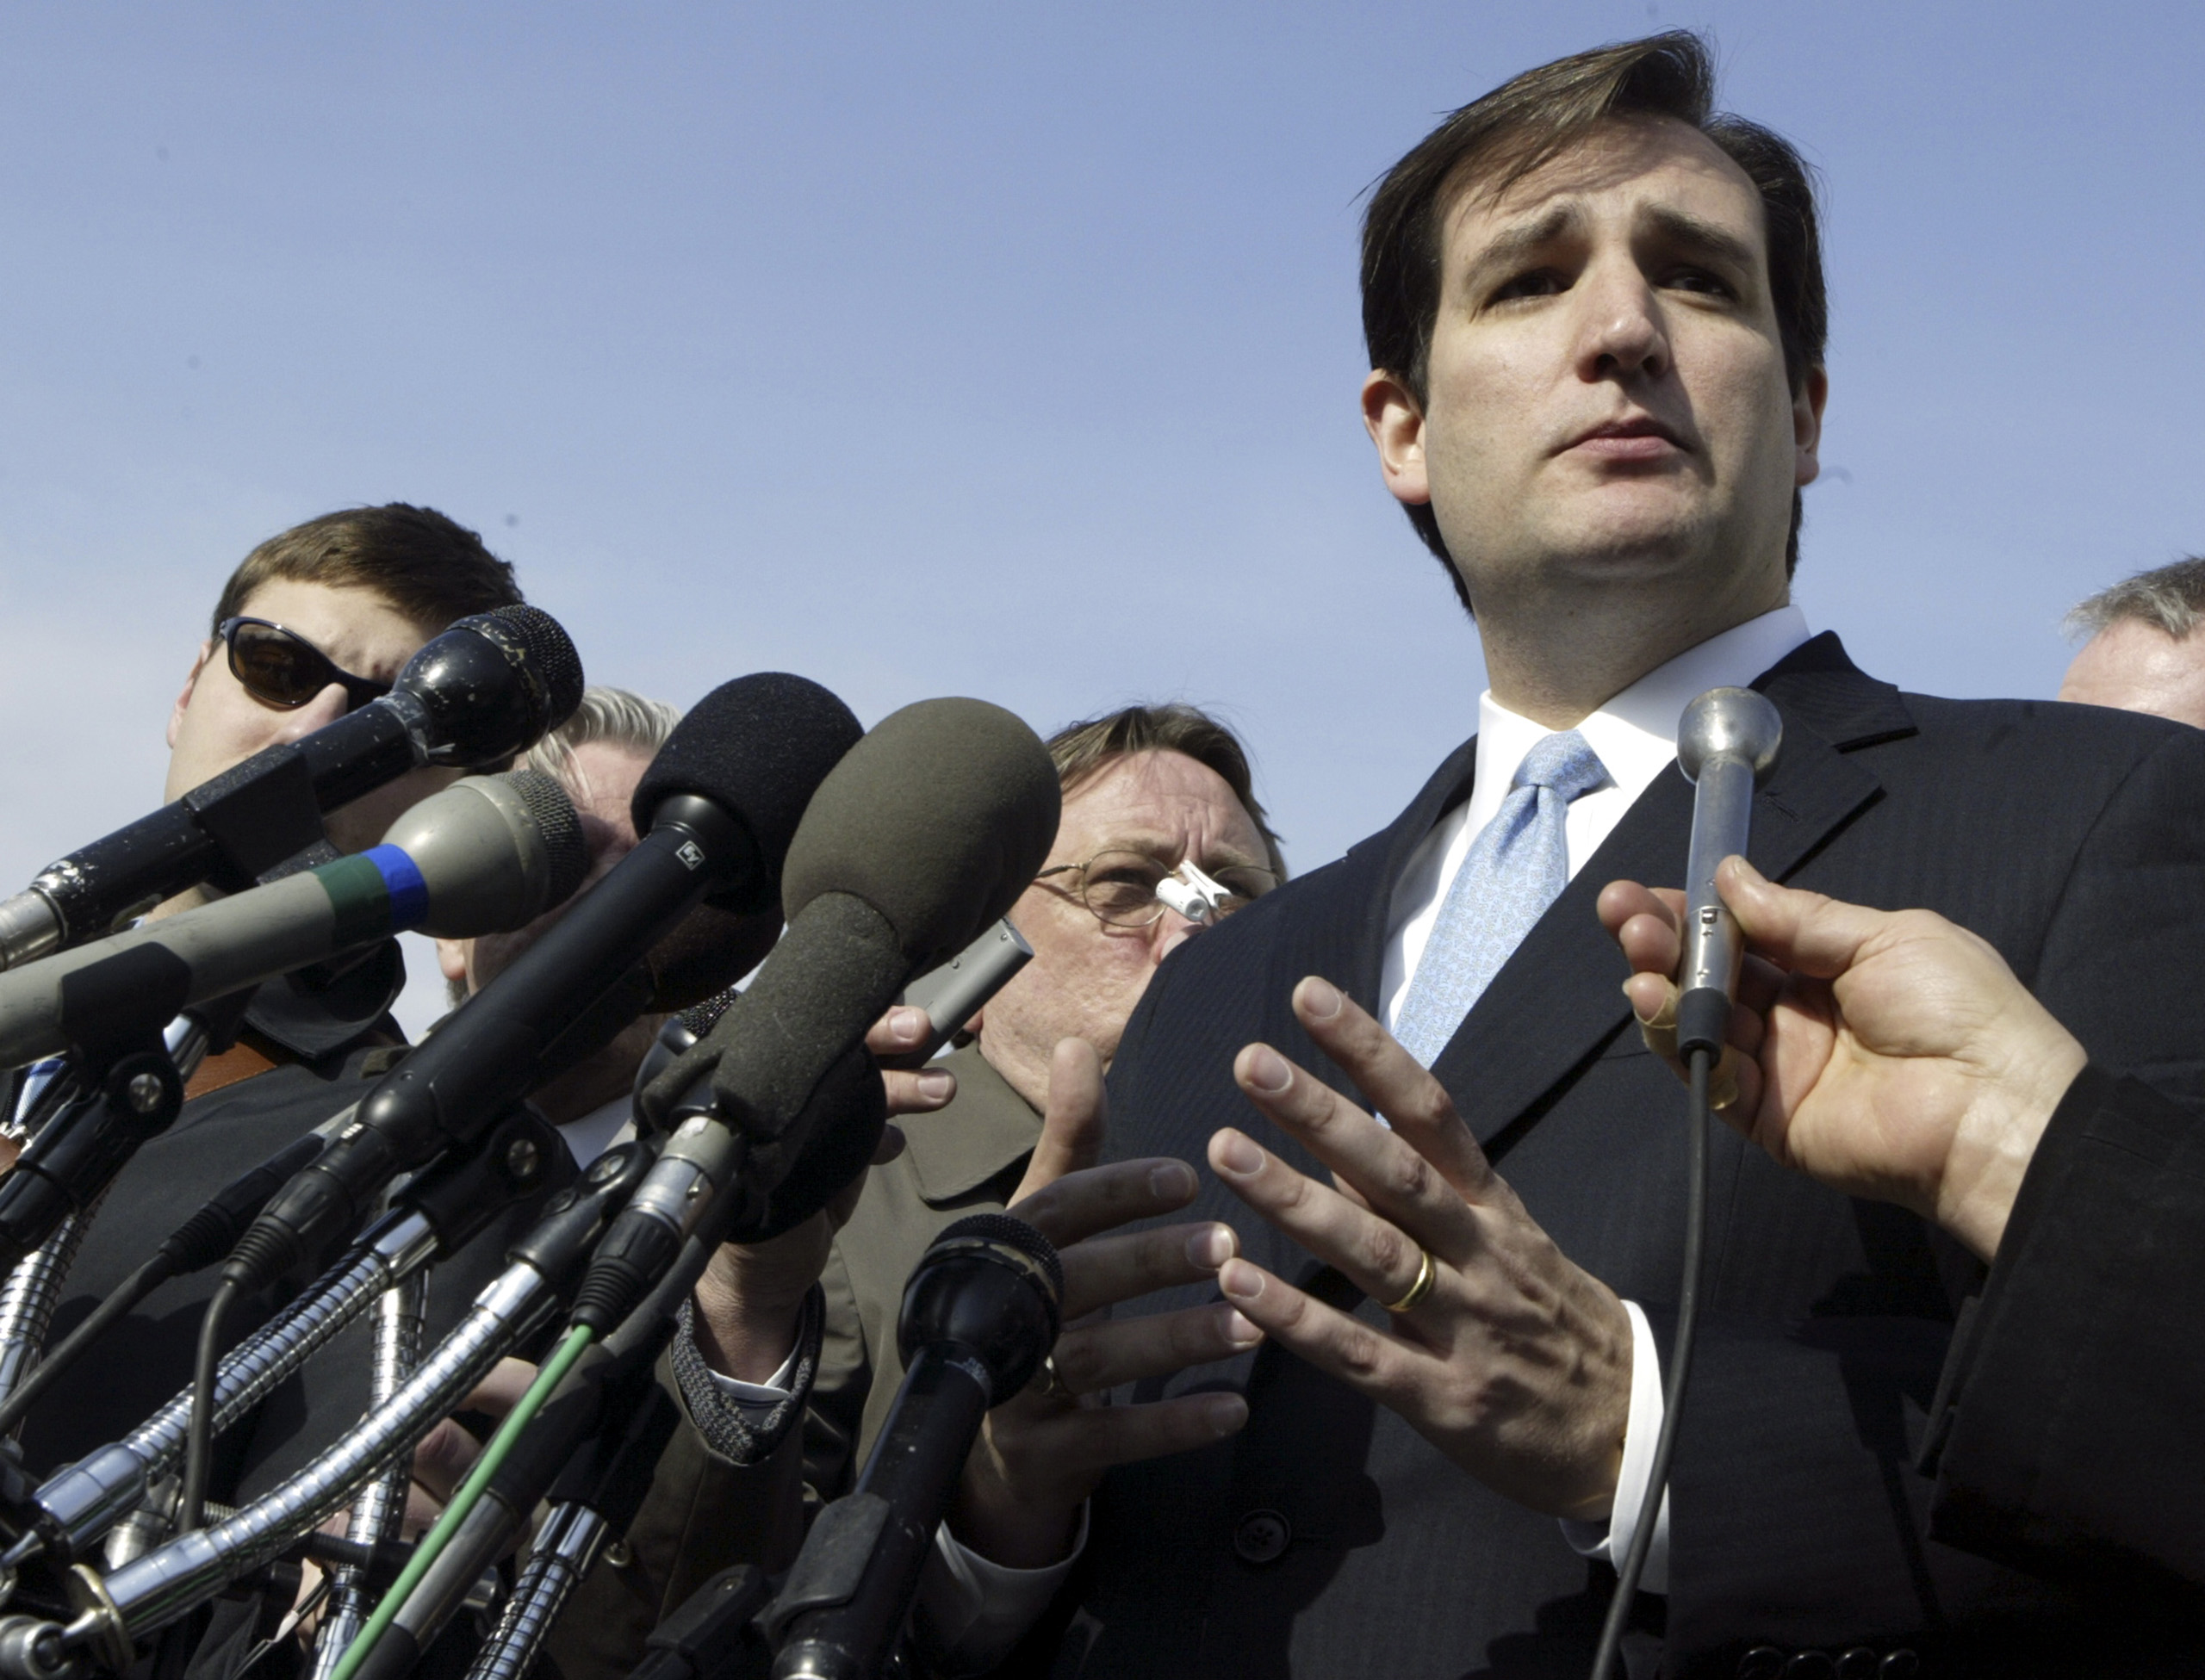 Ted Cruz, Solicitor General of Texas, addresses the press outside the Supreme Court after defending the redistricting of Texas, in Washington on March 1, 2006.